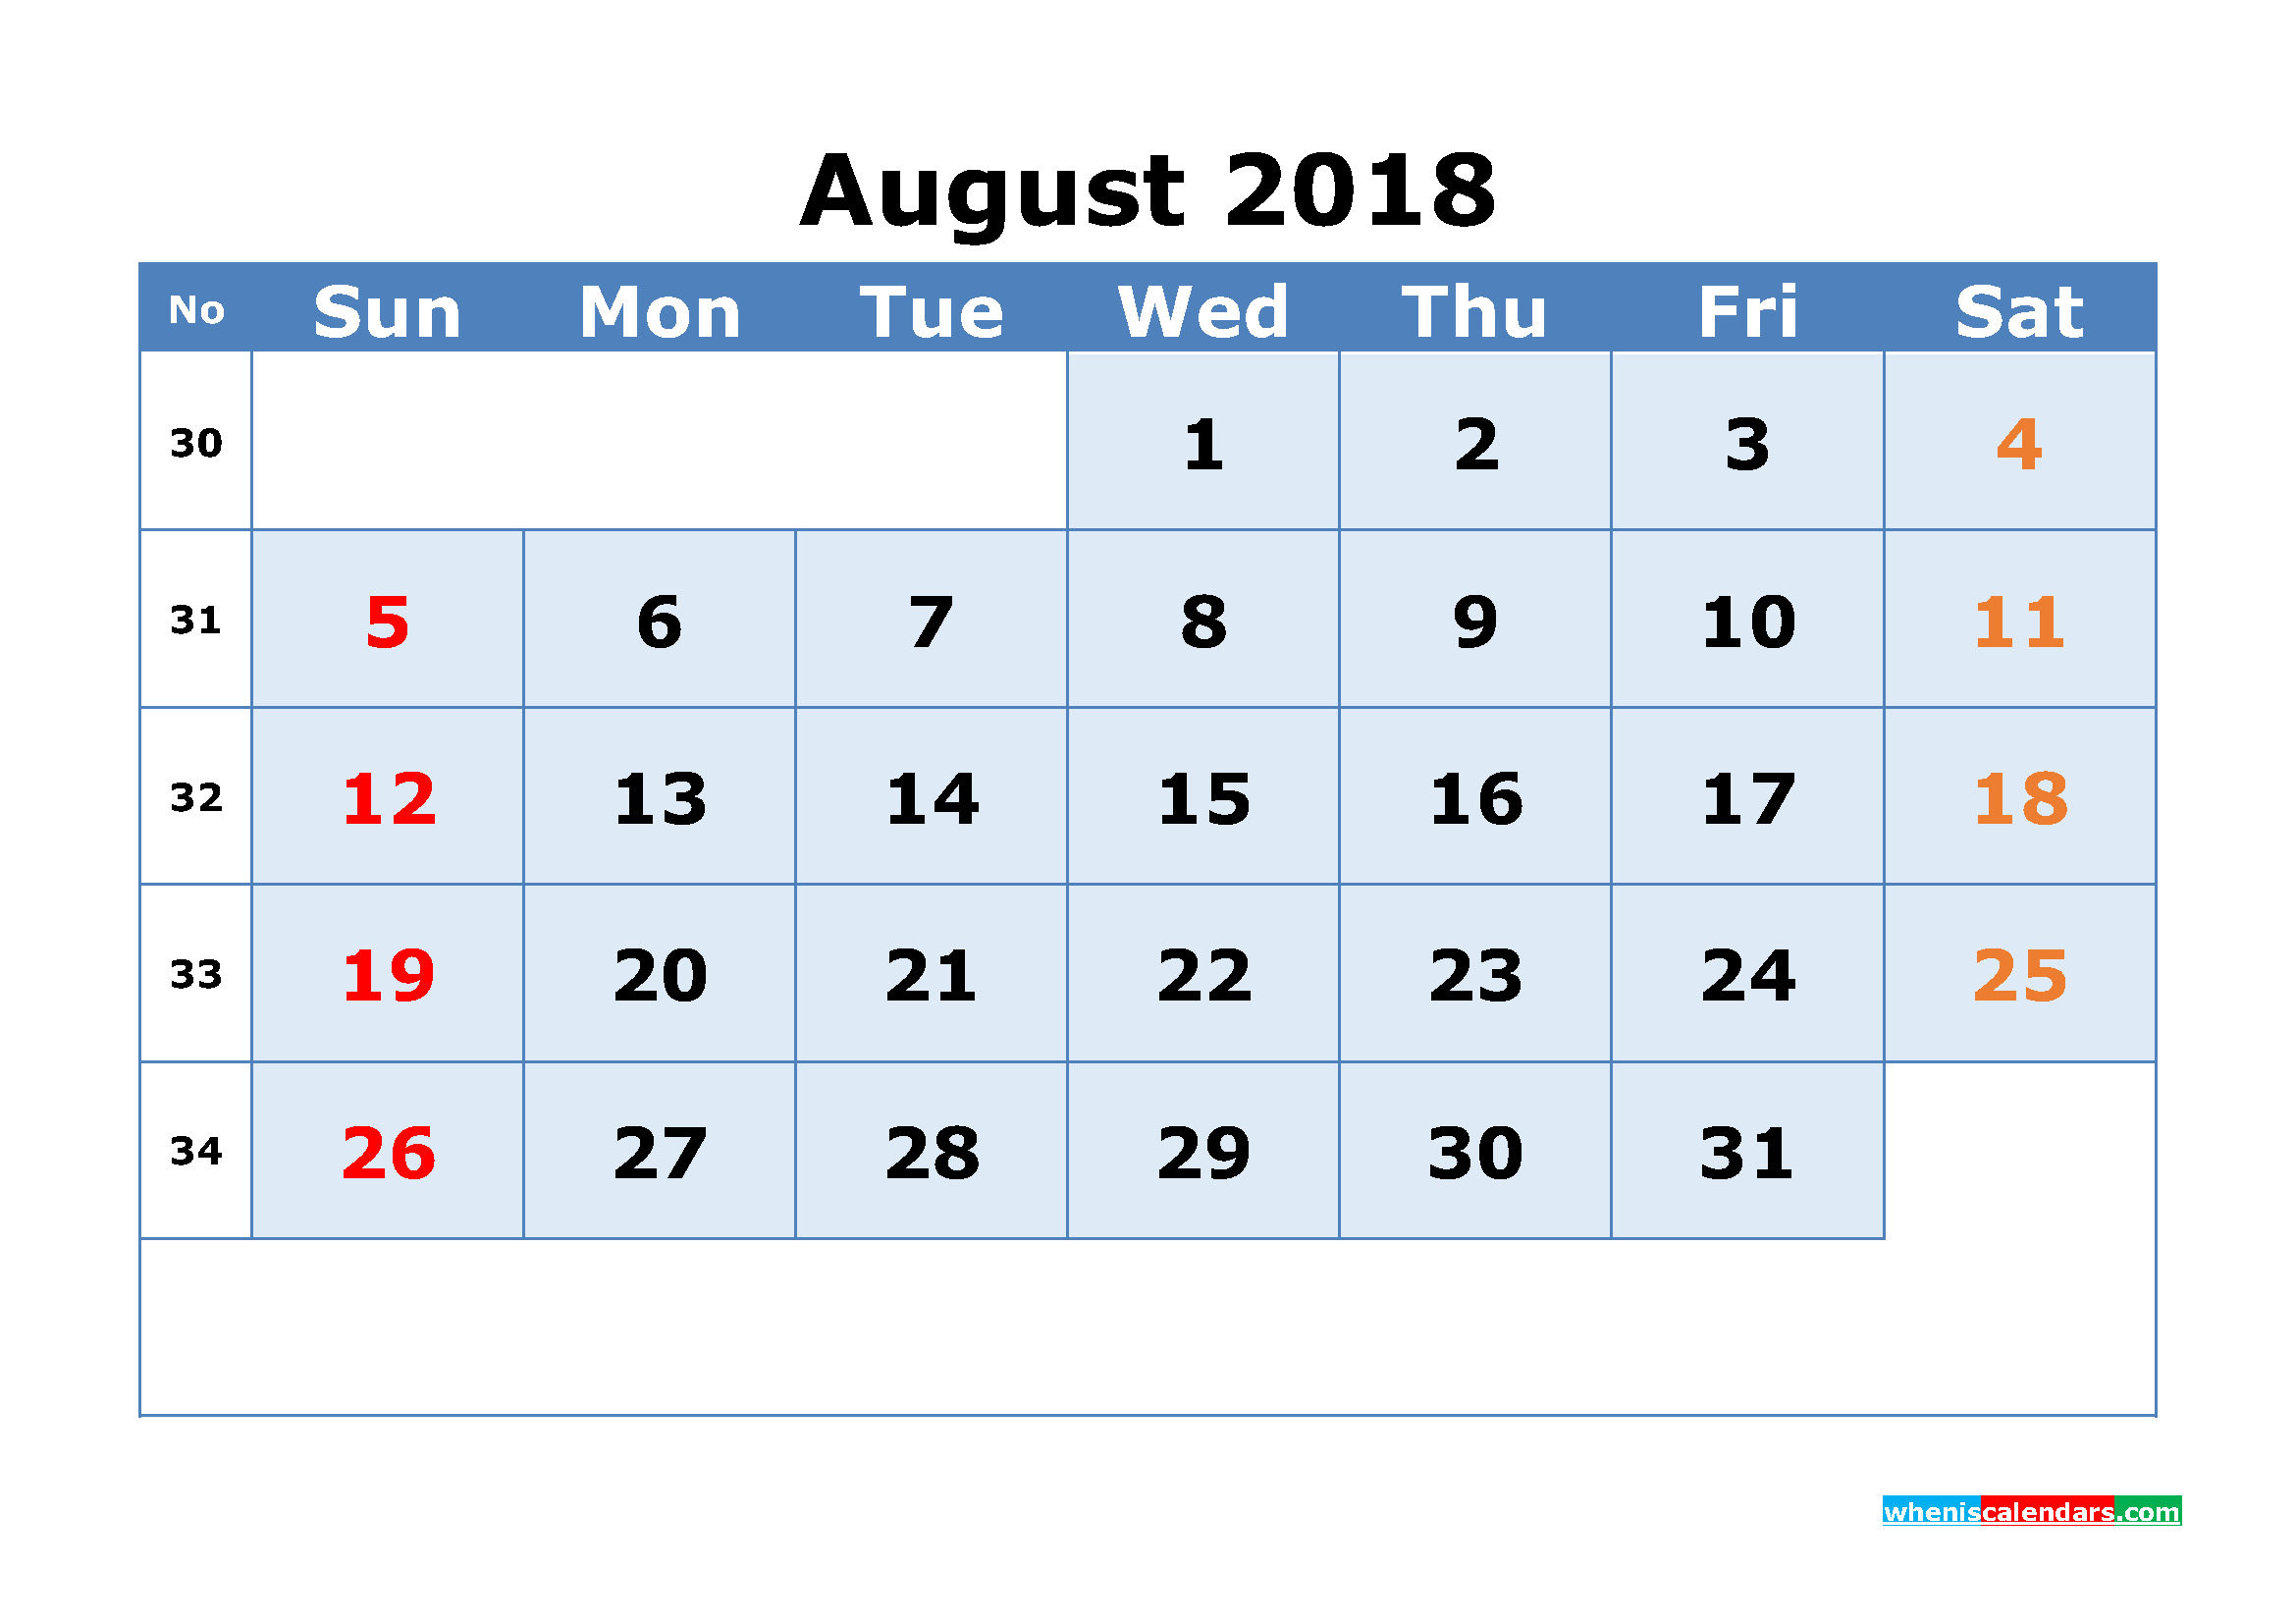 Printable Calendar August 2018 with Week Numbers as, Image